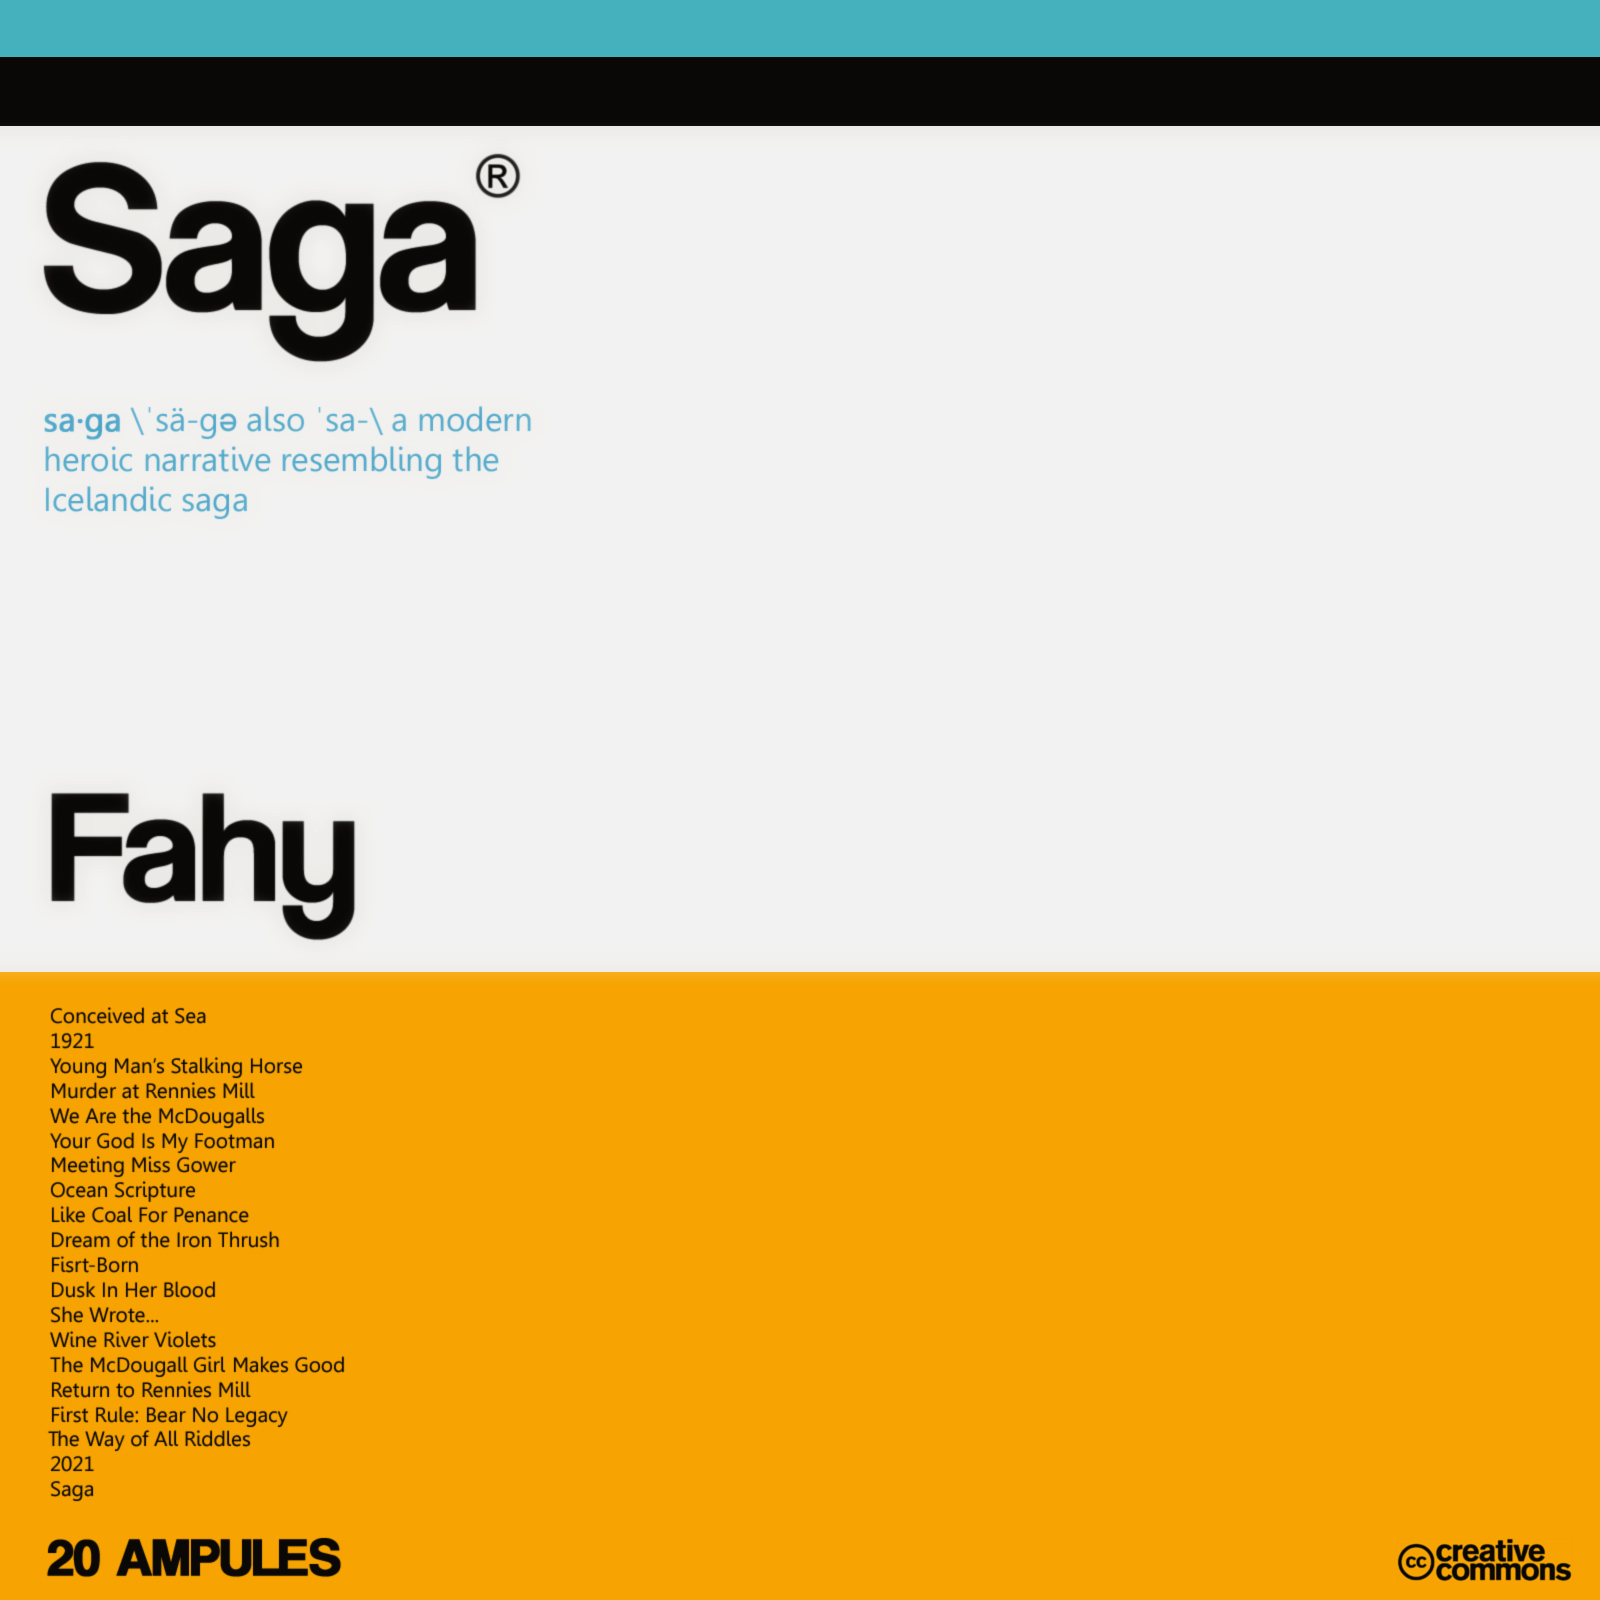 Saga by Tom Fahy